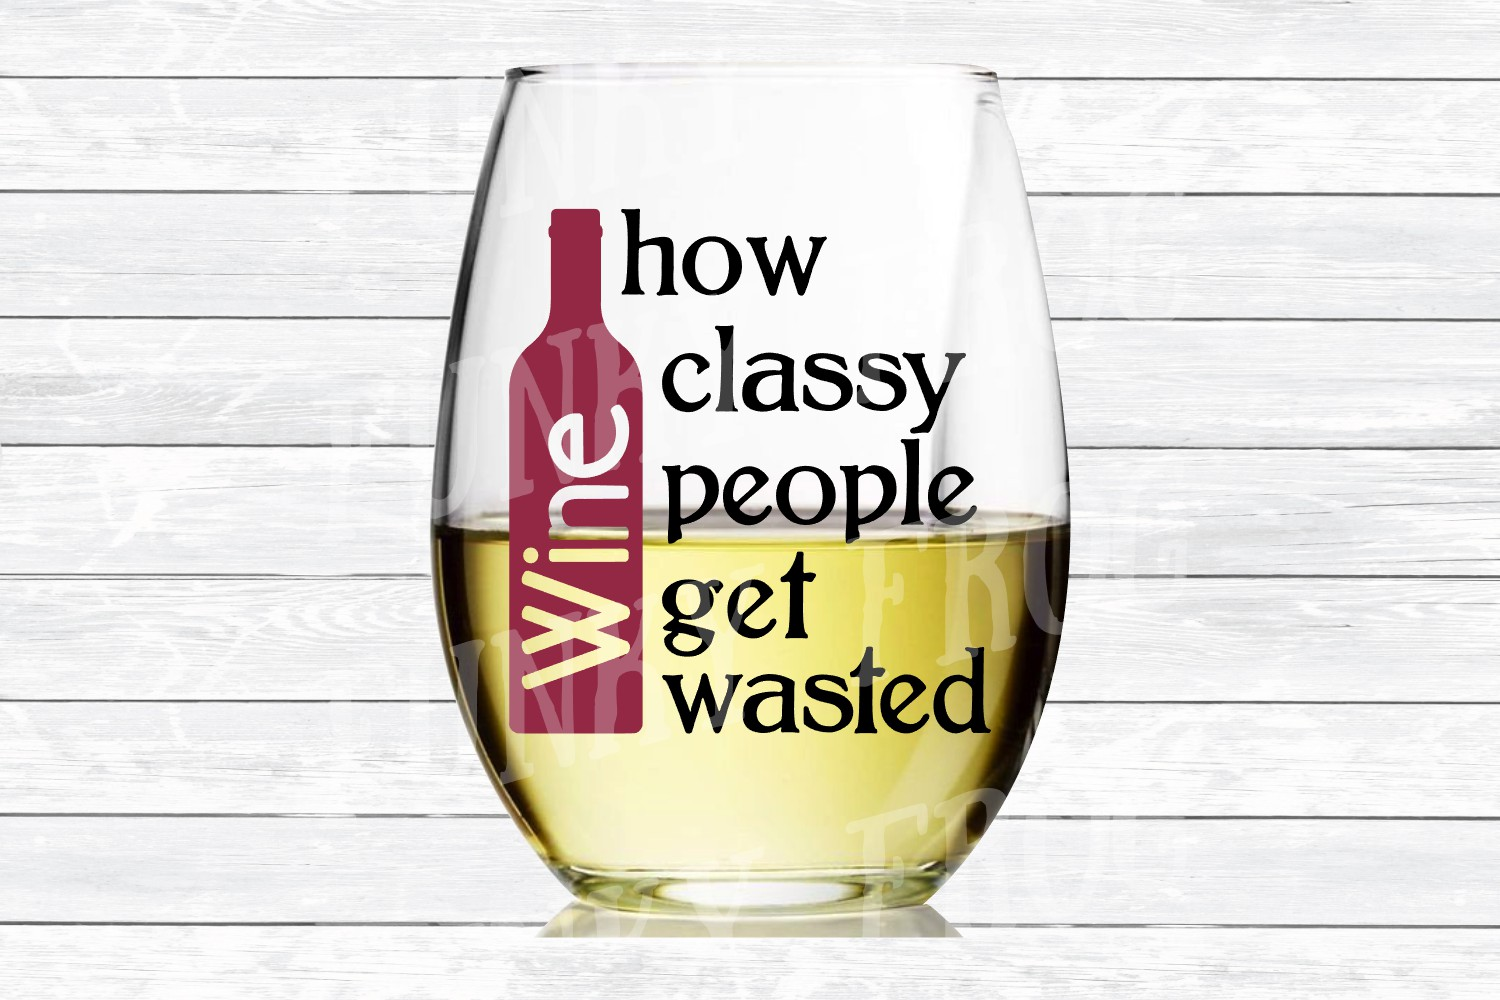 Wine How Classy People Get Wasted SVG Cut File for Cra example image 3